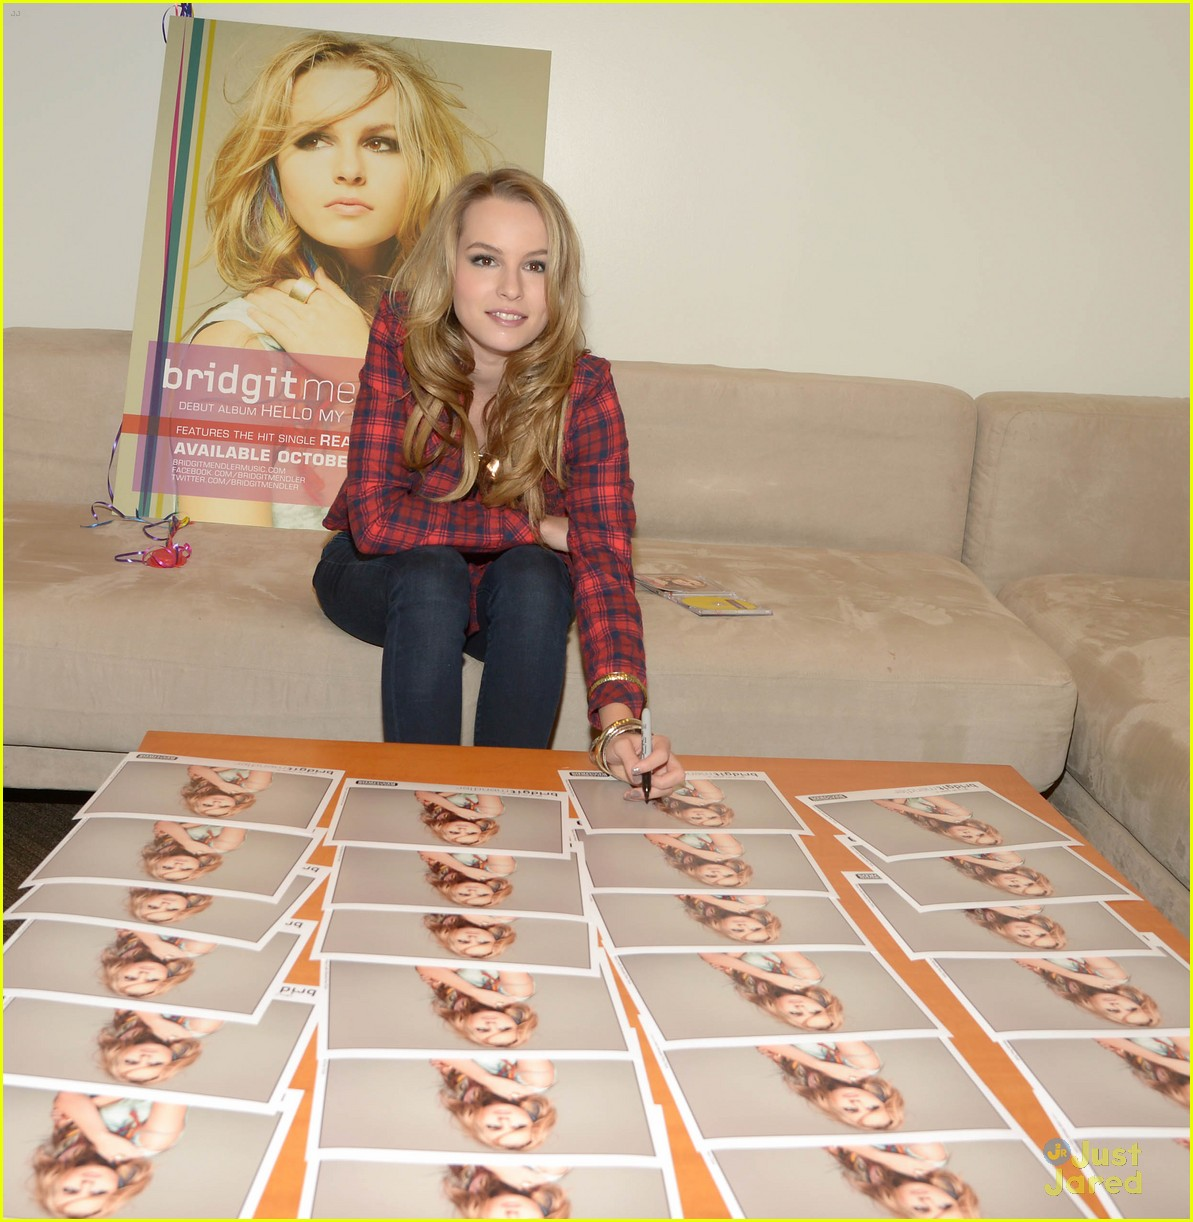 bridgit mendler album stream 06